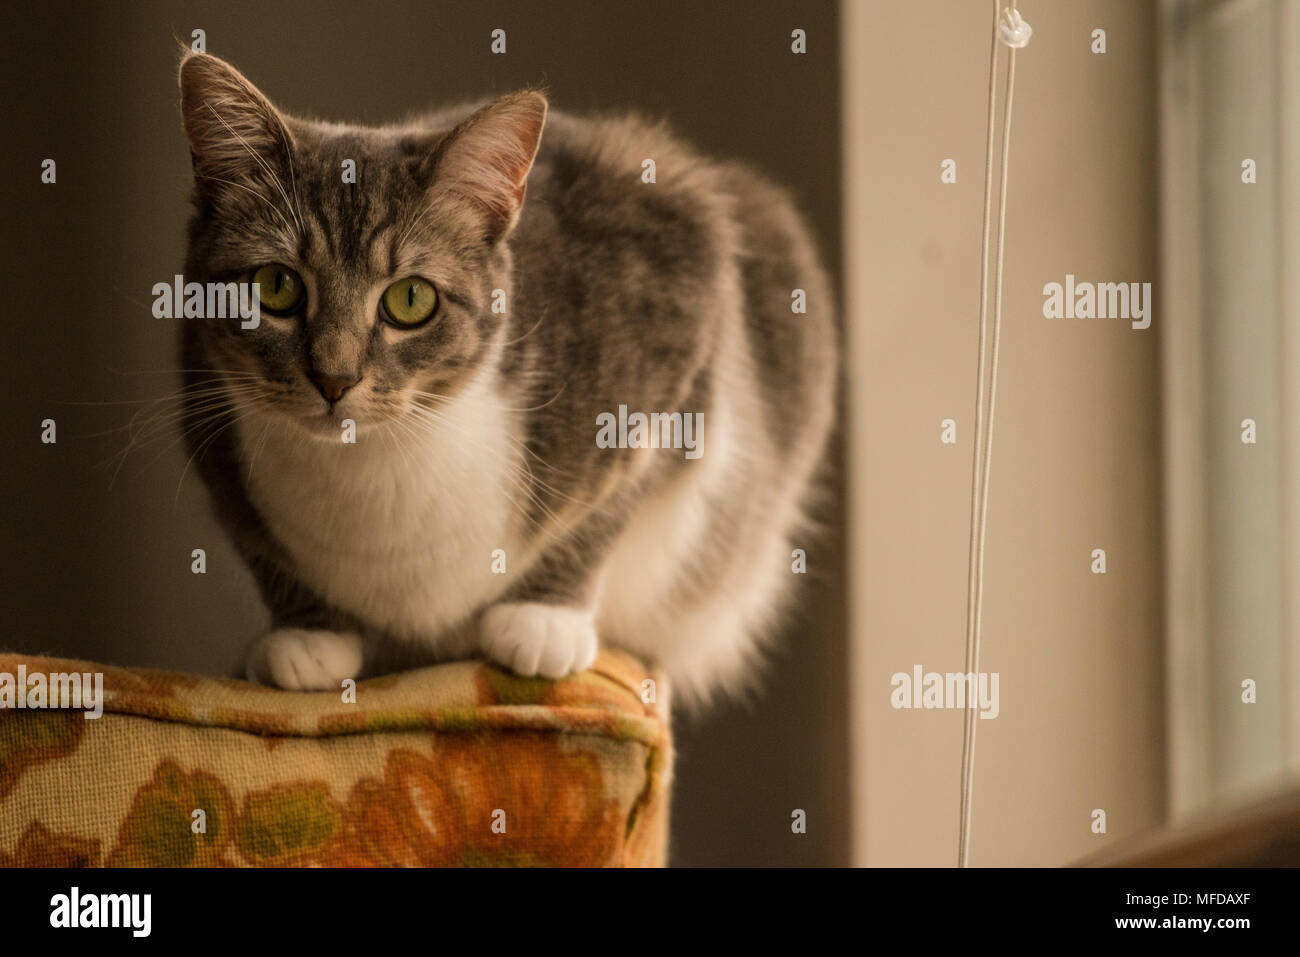 A domestic tabby cat, a spoiled indoor cat that lounges and reclines all around the house. - Stock Image